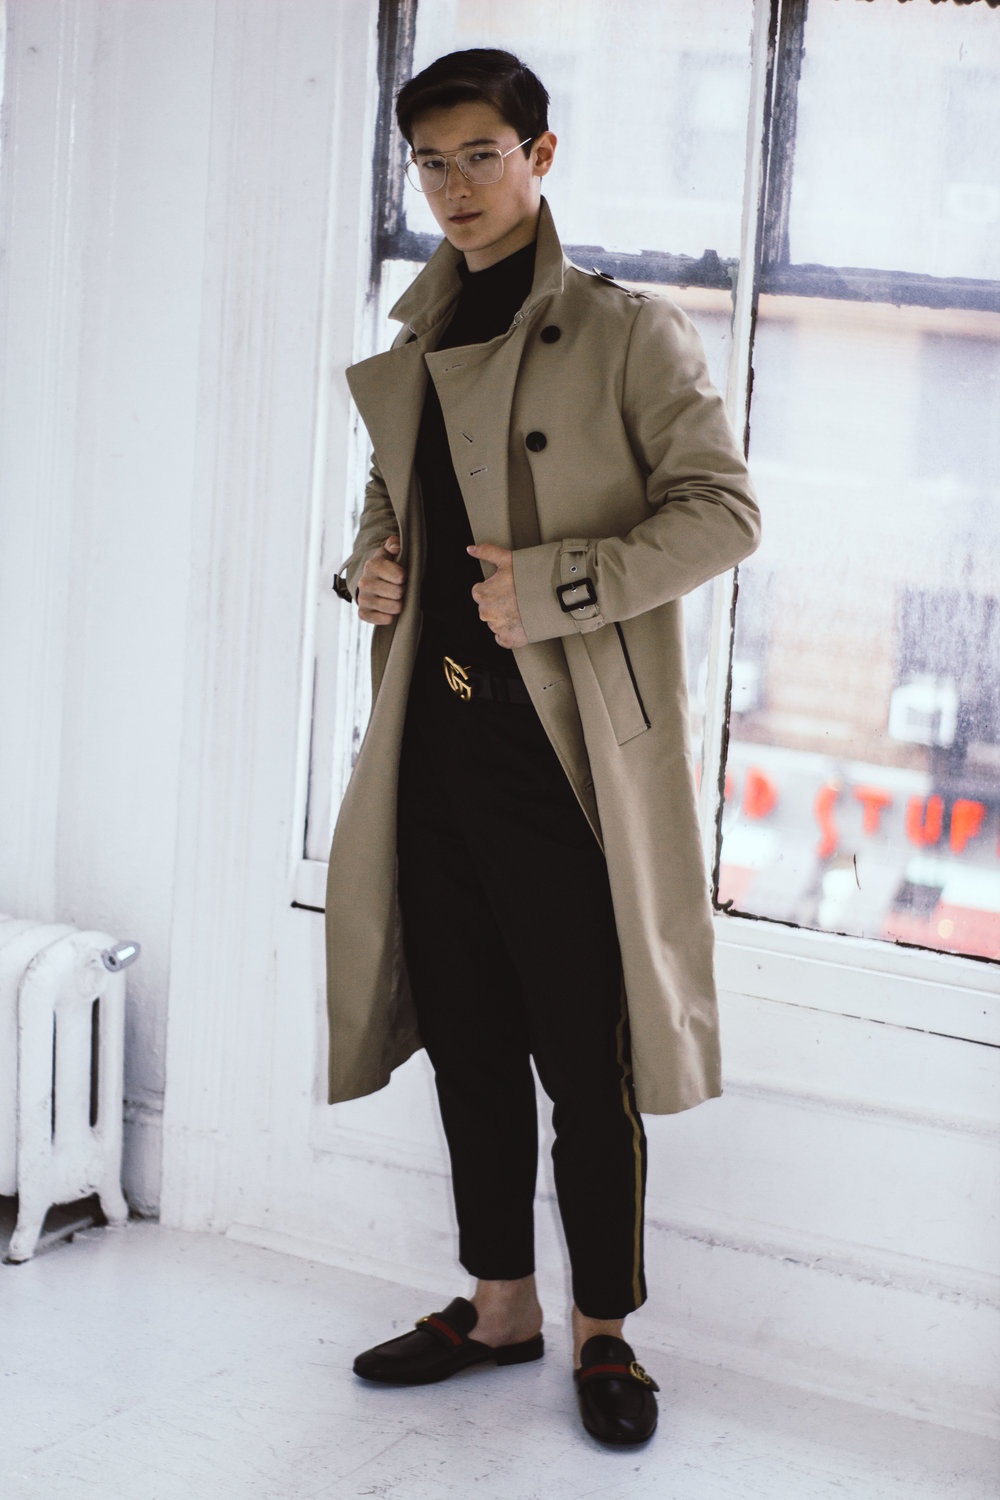 Trench: Asos, Sweater: Zara, Pants: H&M, Glasses: H&M, Belt: Gucci, Shoes: Gucci